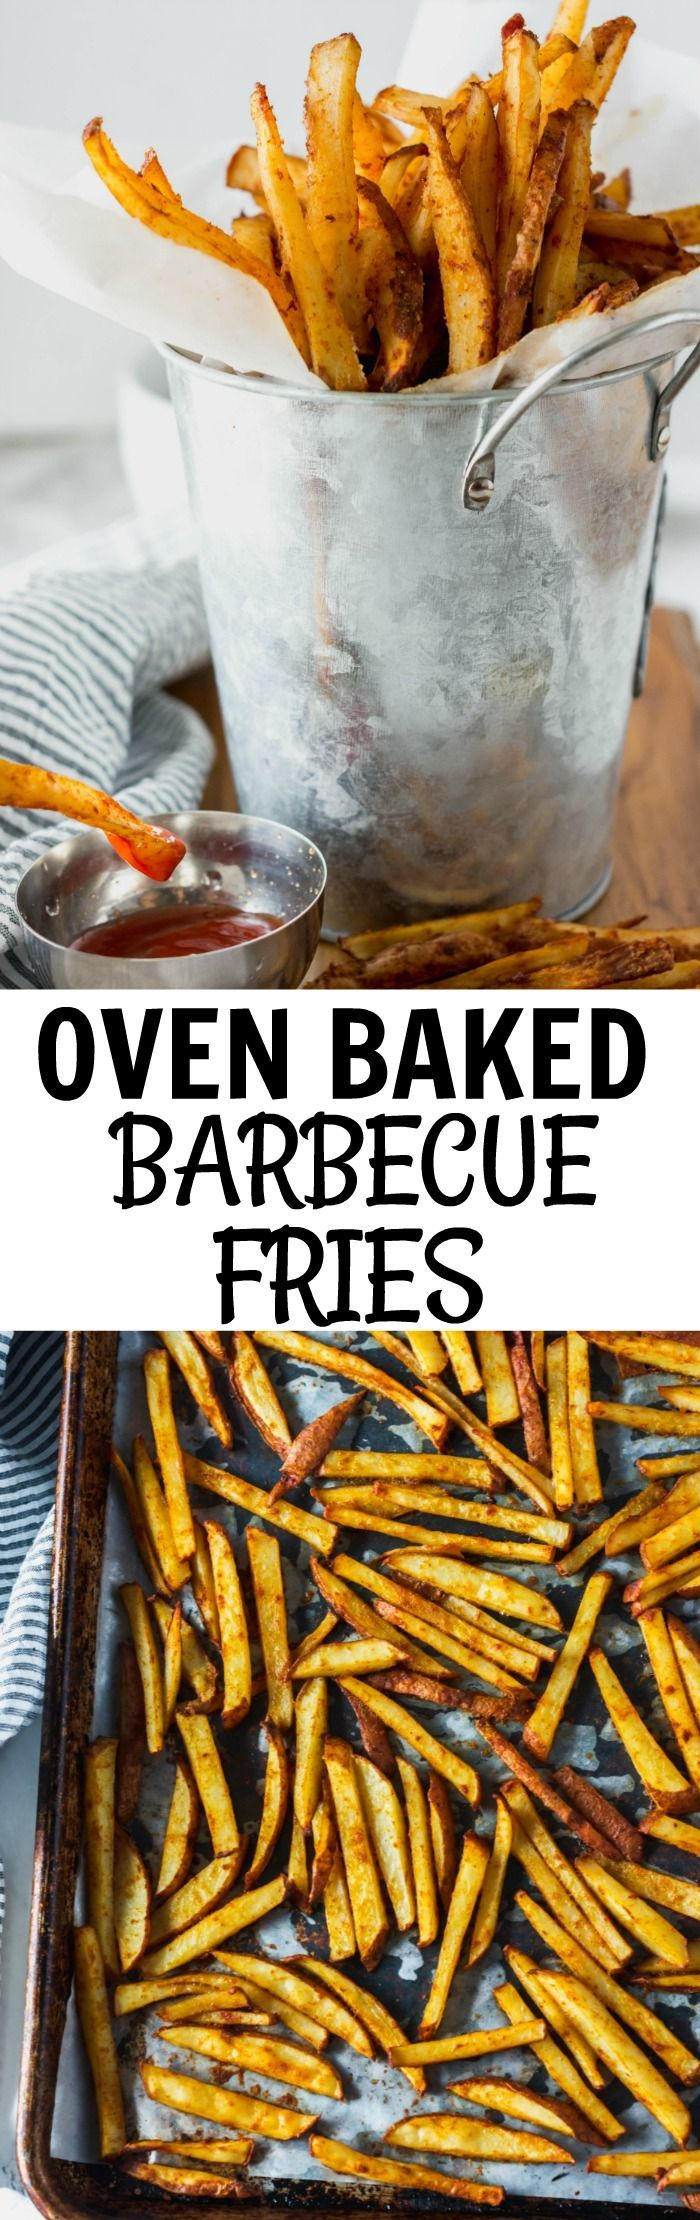 Oven Baked Barbecue Fries Easy to make with less calories than fried. #fries #bakedfries #potatoes